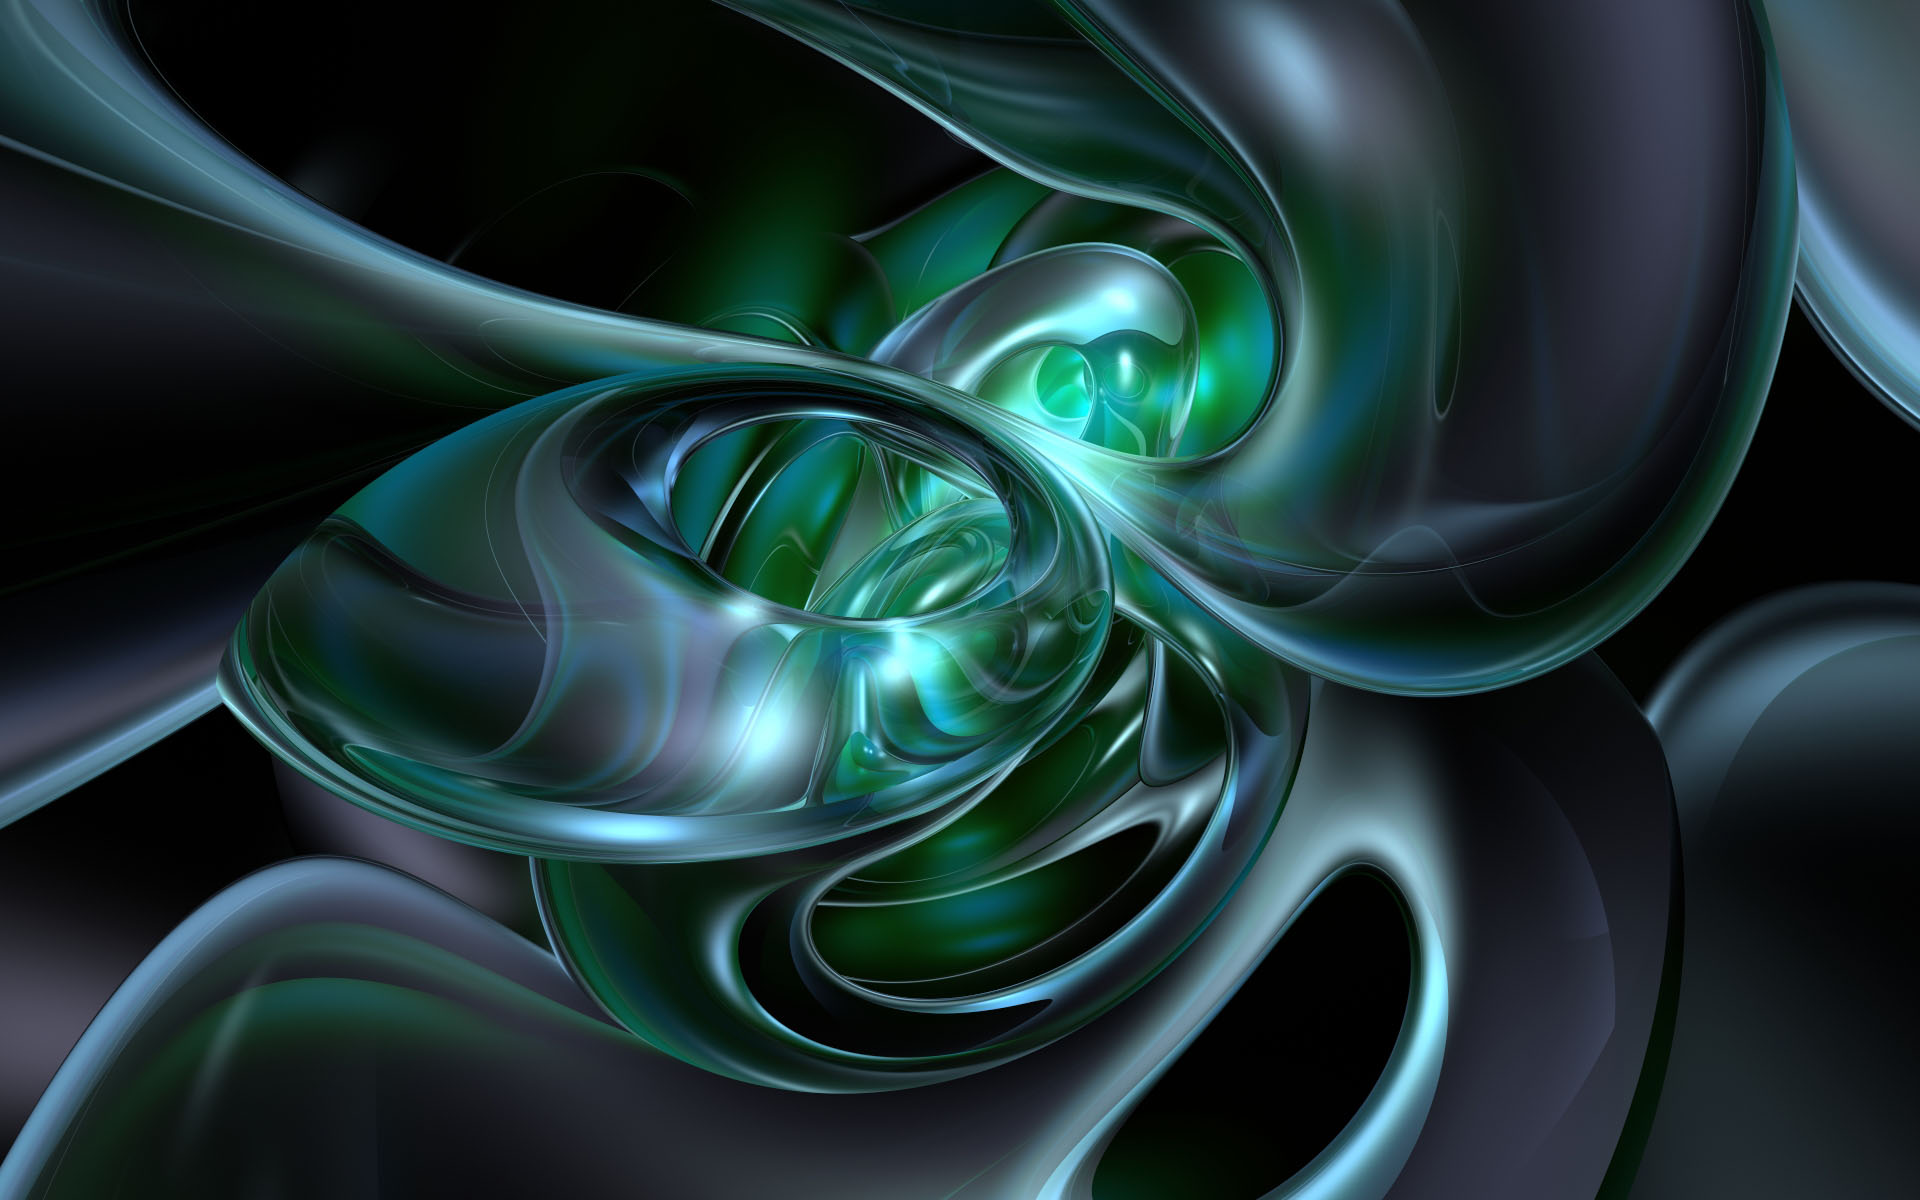 10 Most Popular 3d Wallpaper Hd 1080p Free Download Full: Wallpapers Abstract 3d » Animaatjes.nl